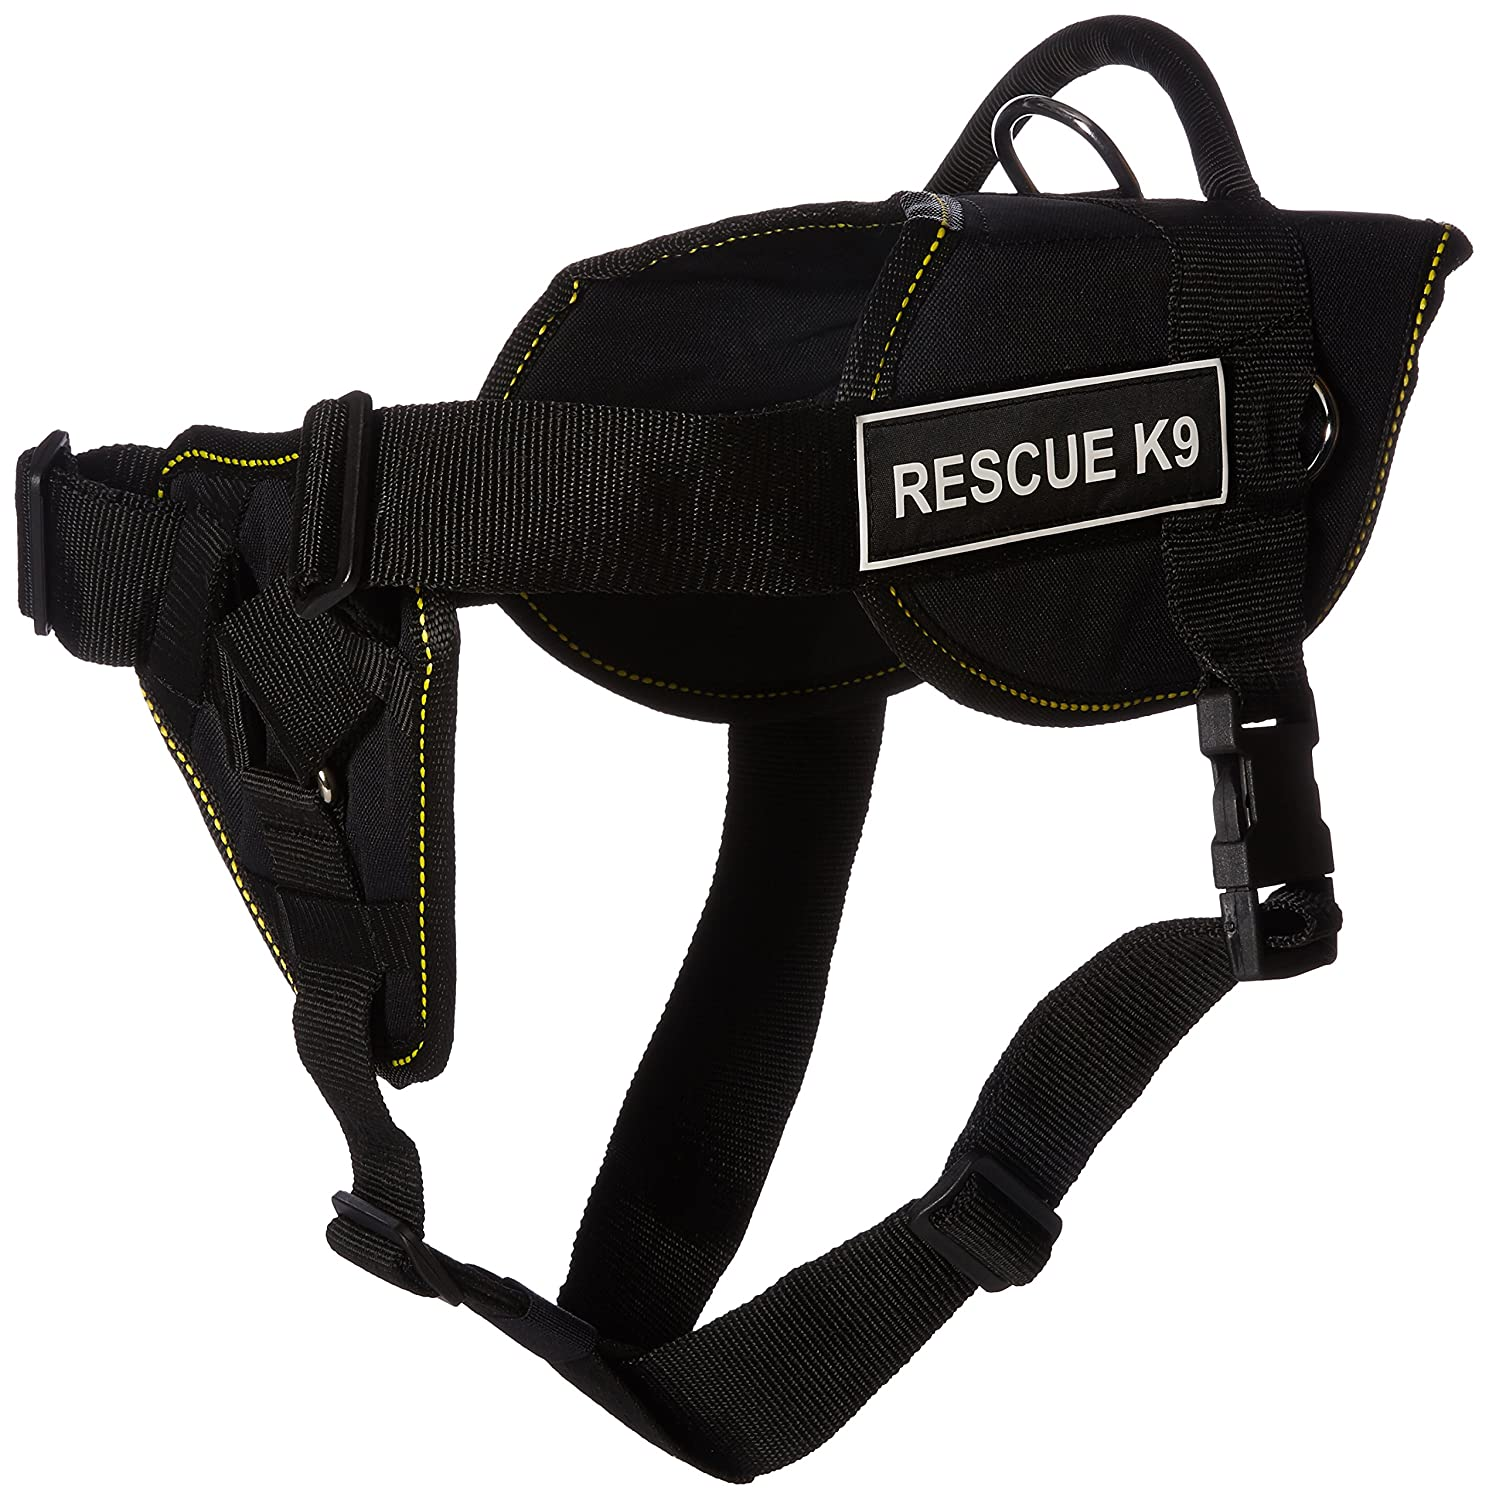 Dean & Tyler DT Fun Rescue K9  Dog Harness with Padded Chest Piece, Fits Girth Size 32-Inch to 42-Inch, Large, Black with Yellow Trim